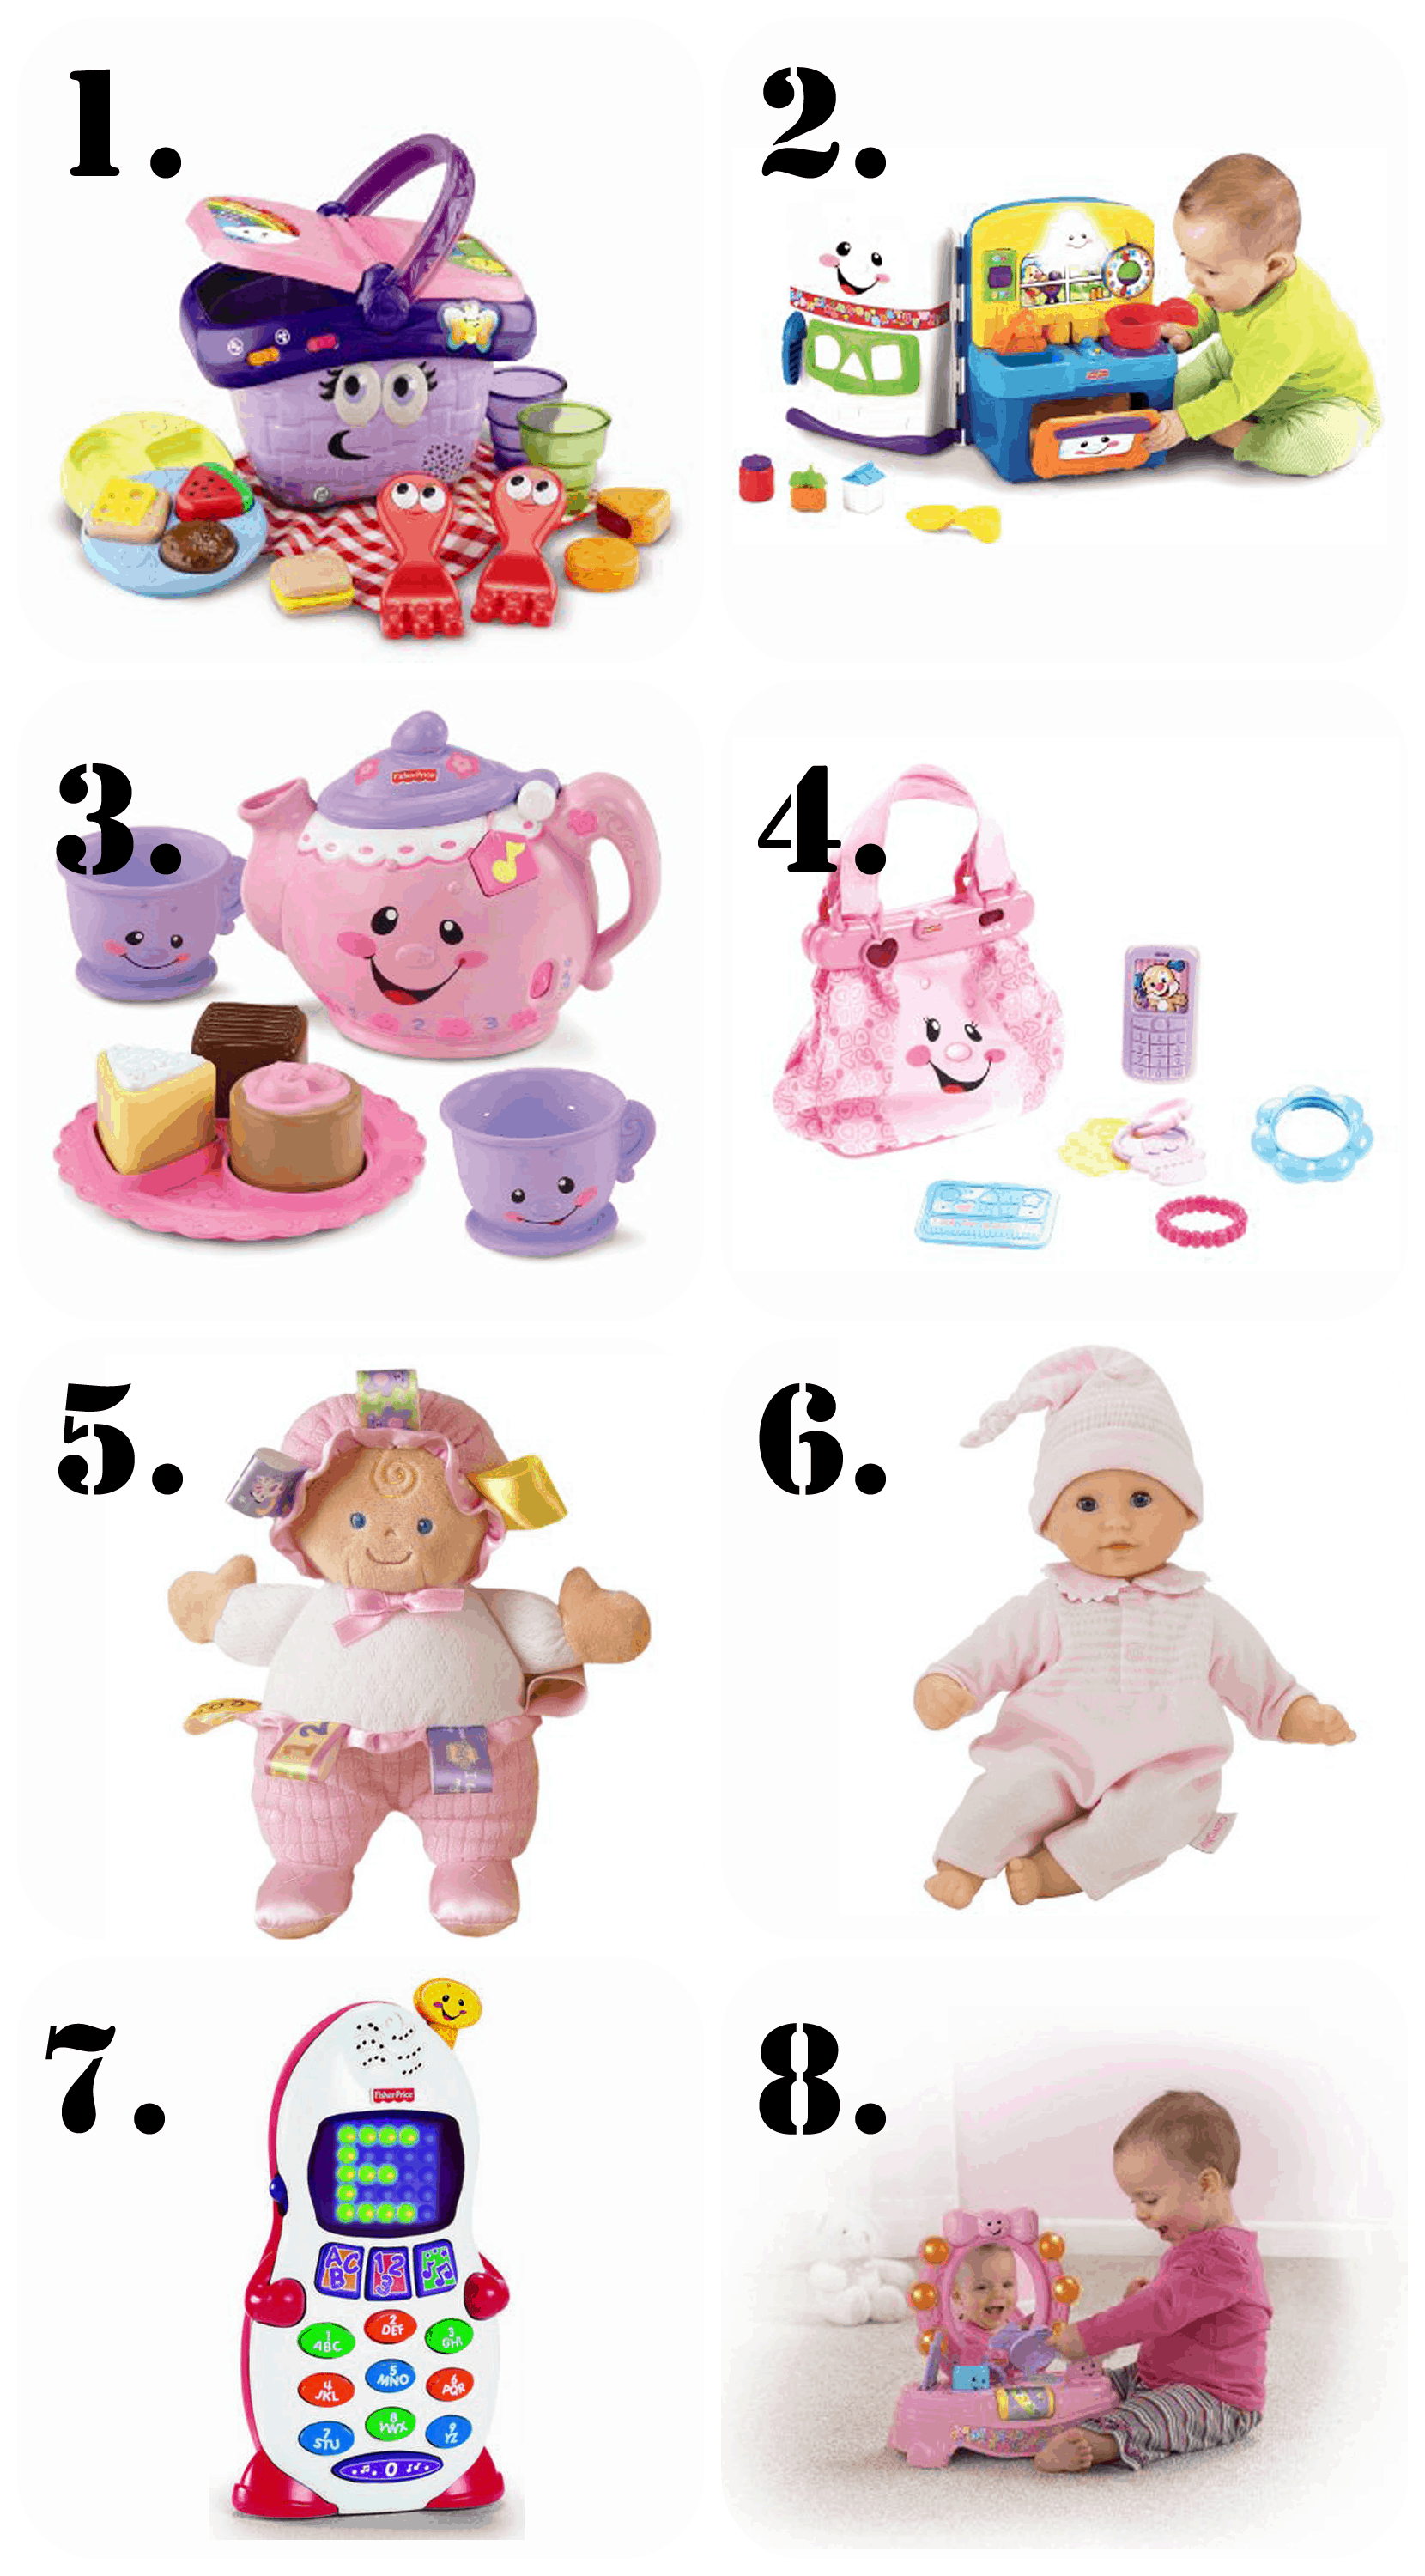 Dolls, tea sets, and other toys make the best gifts for 1 year old girl